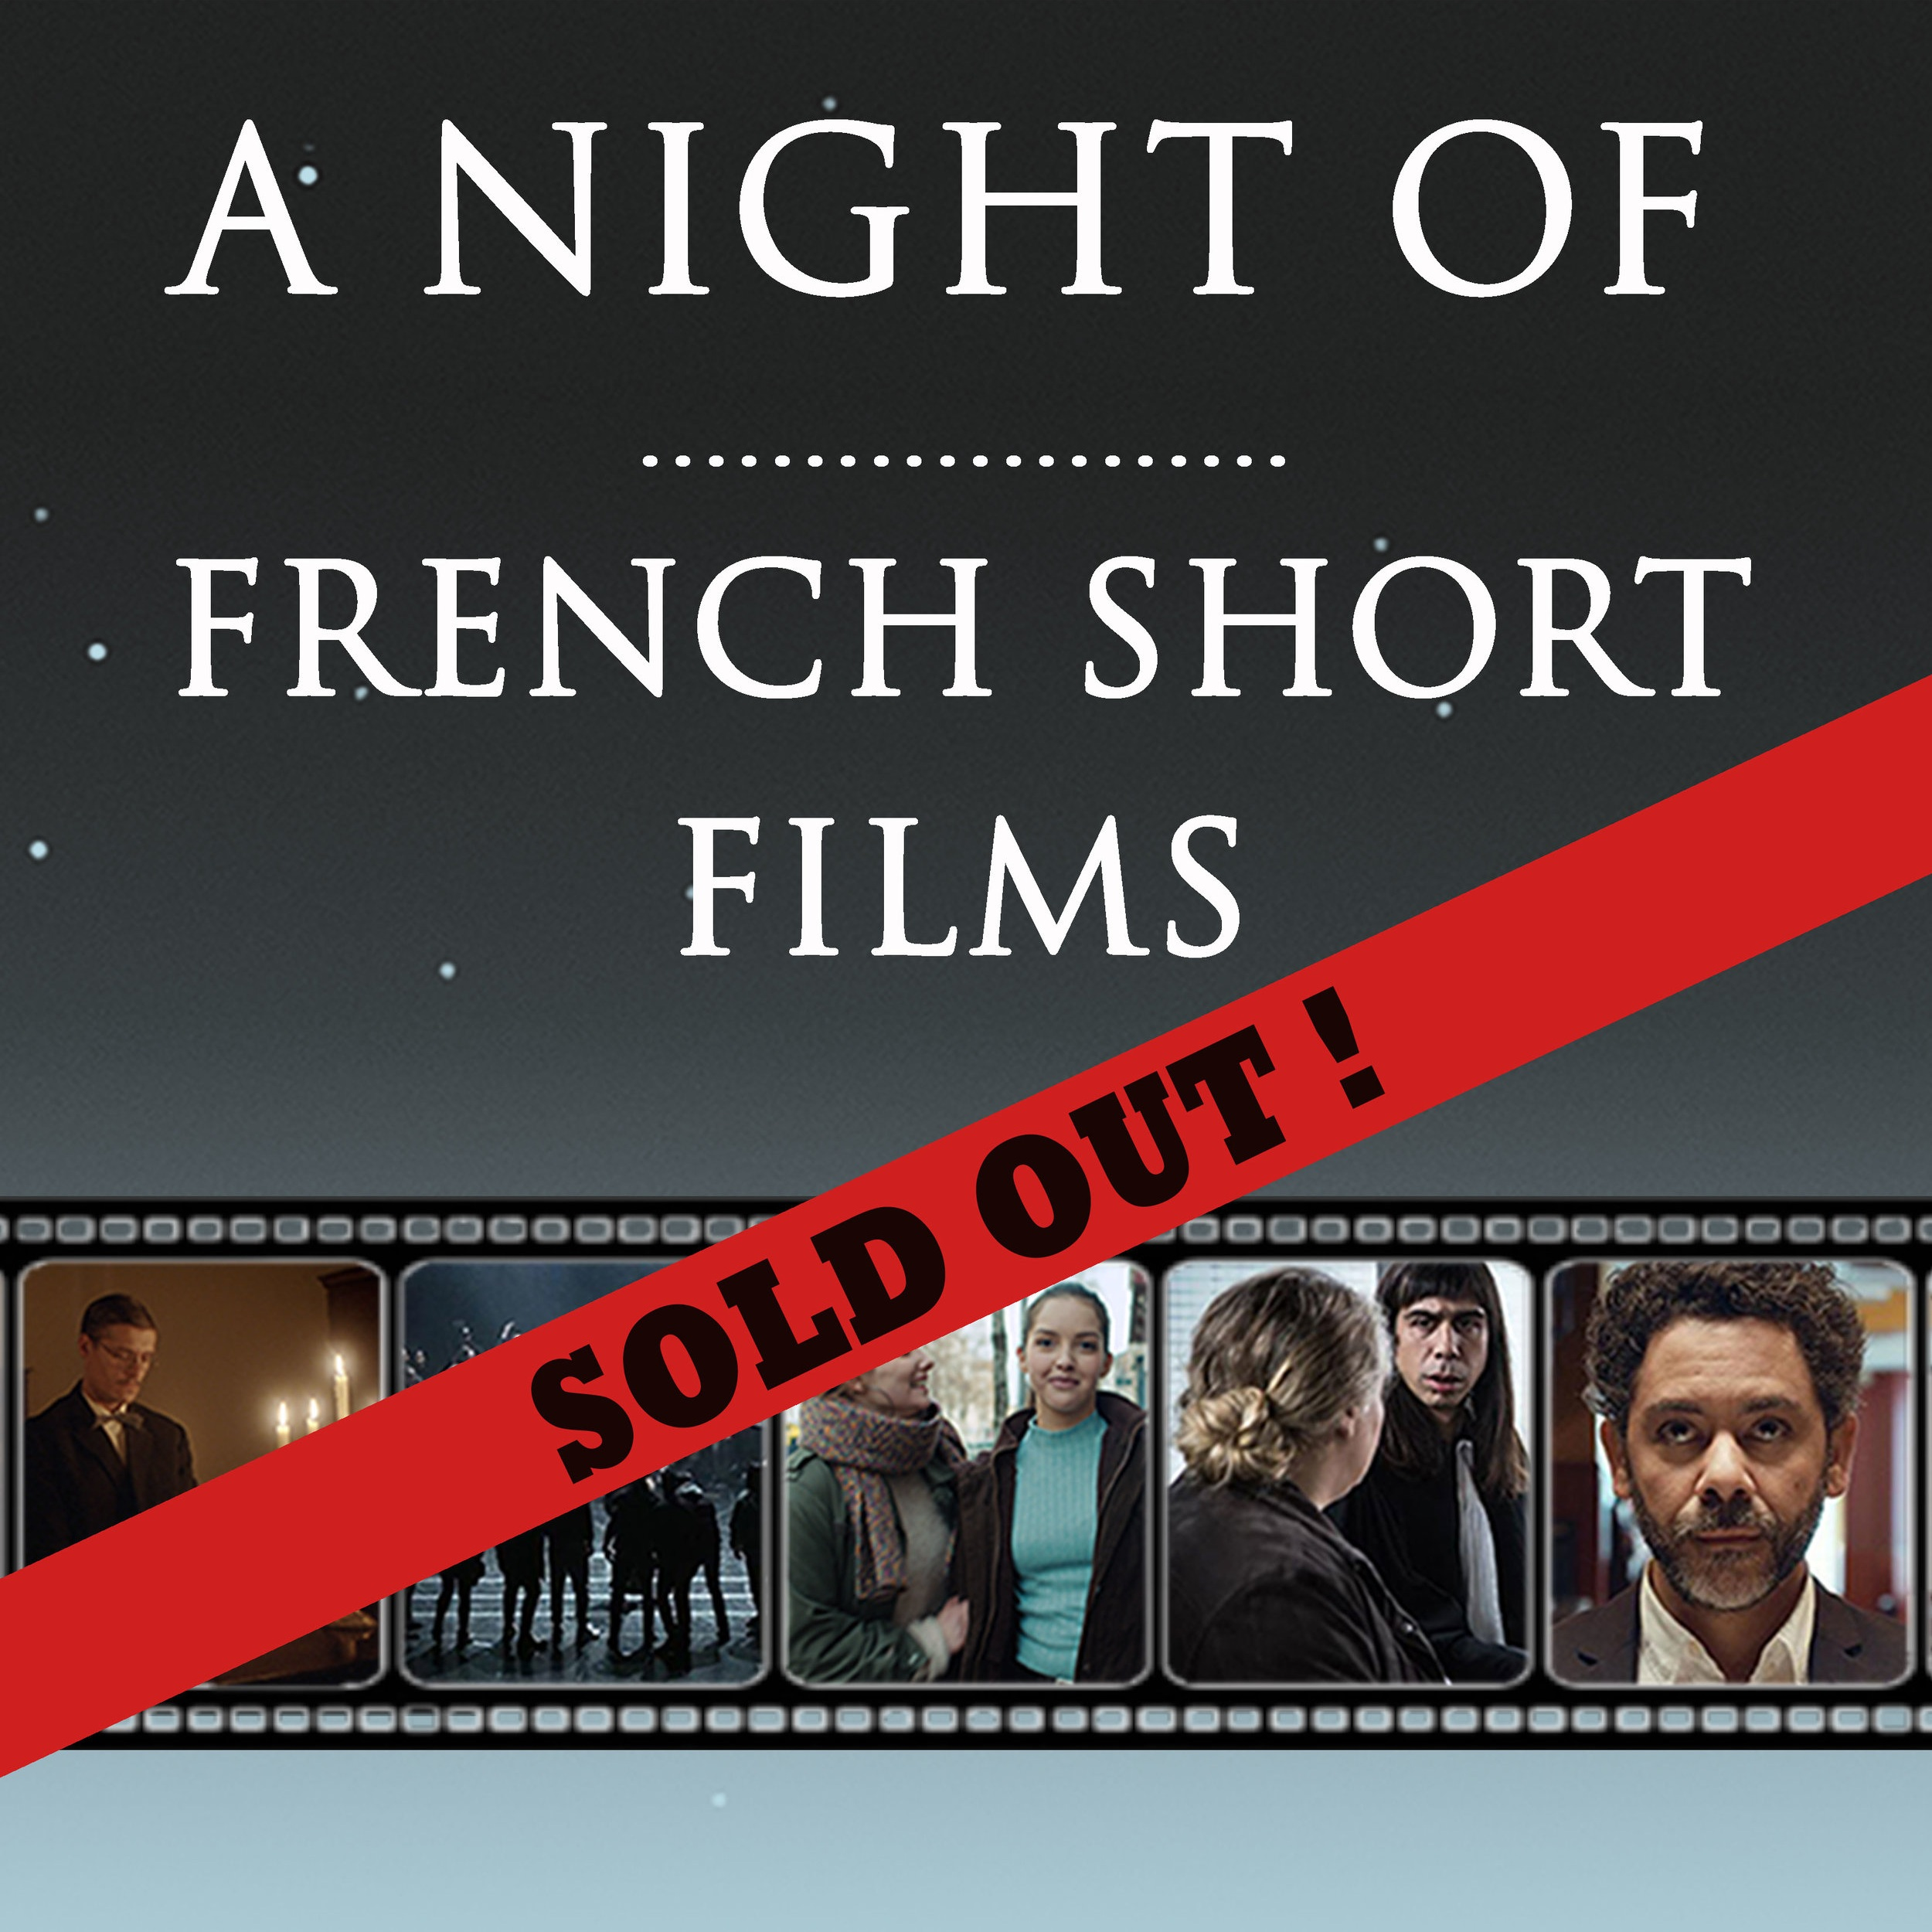 A Night Of French Short Films